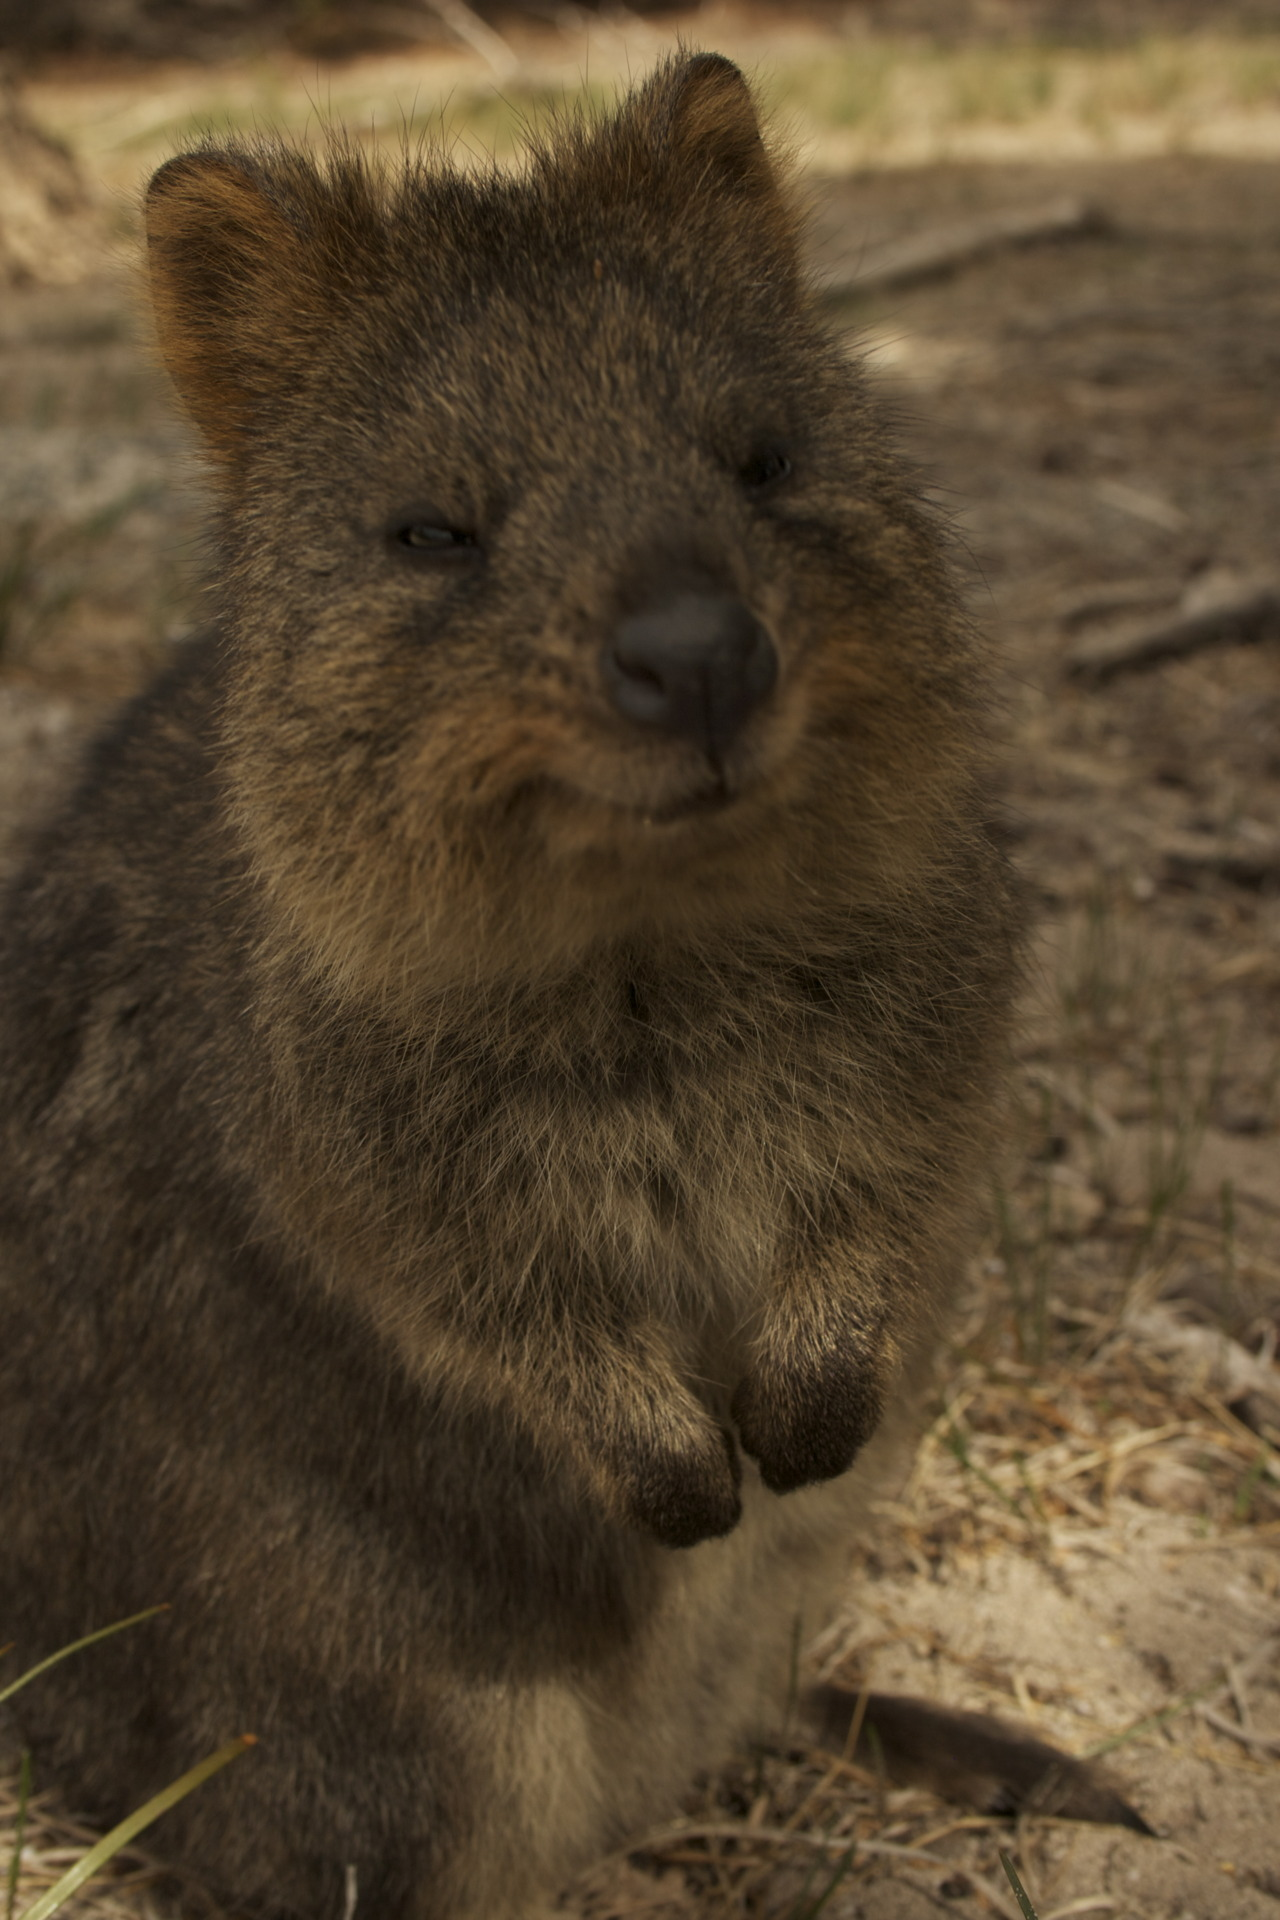 replacebatterypack:  Quokka (a marsupial native to islands off the coast of Western Australia)